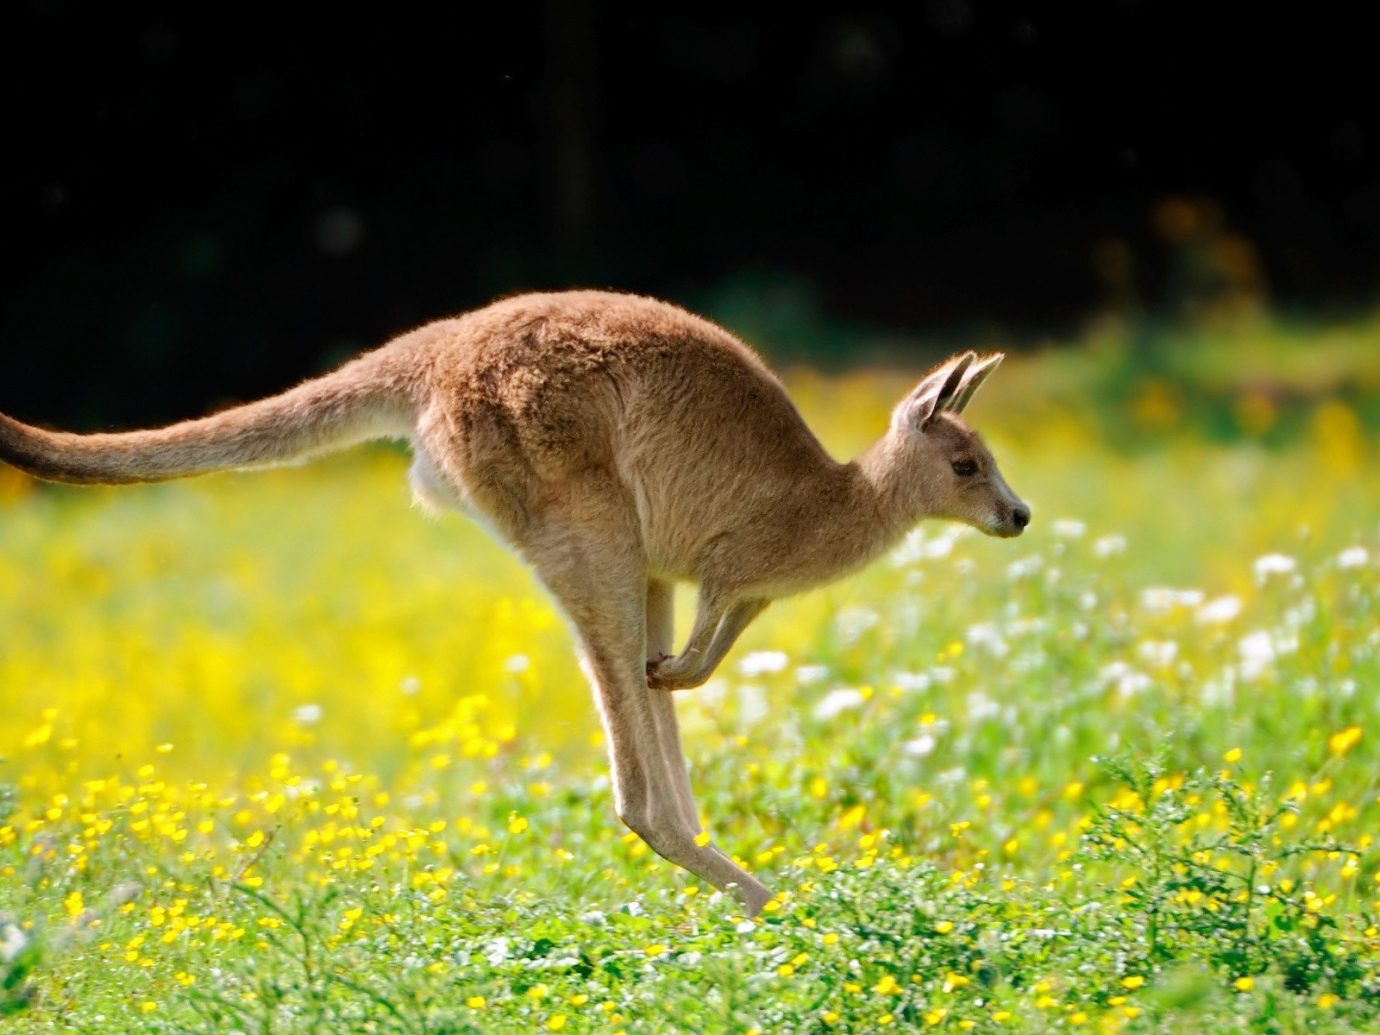 Trip Ideas grass animal mammal outdoor kangaroo vertebrate Wildlife fauna macropodidae white tailed deer deer marsupial gazelle